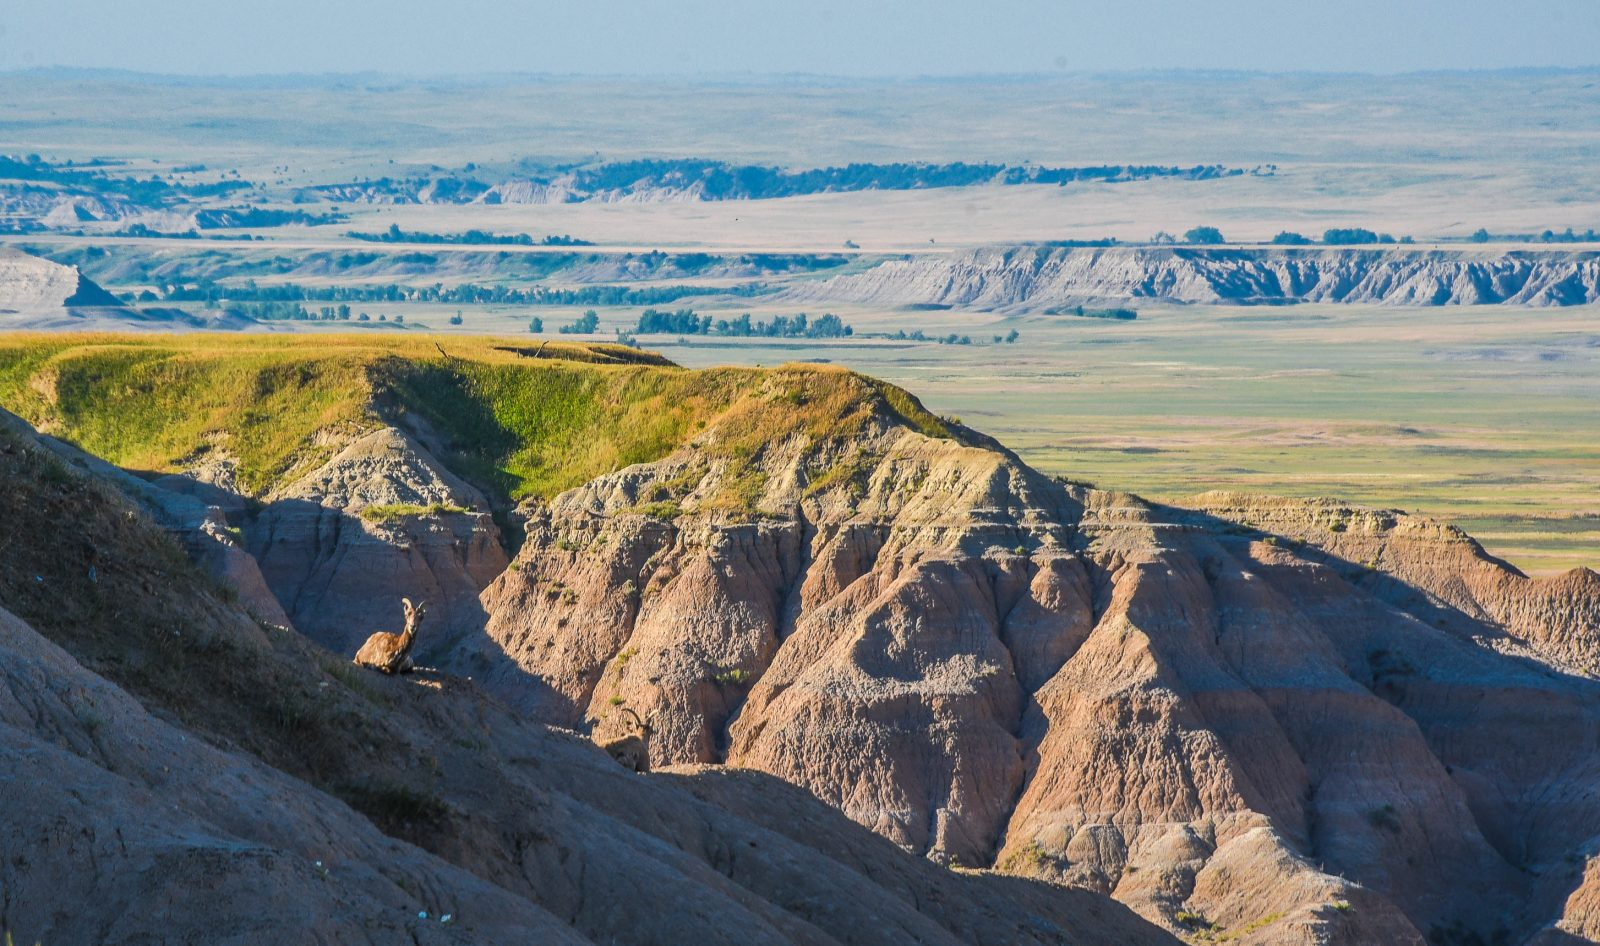 Hanging Out on a Rock in Badlands